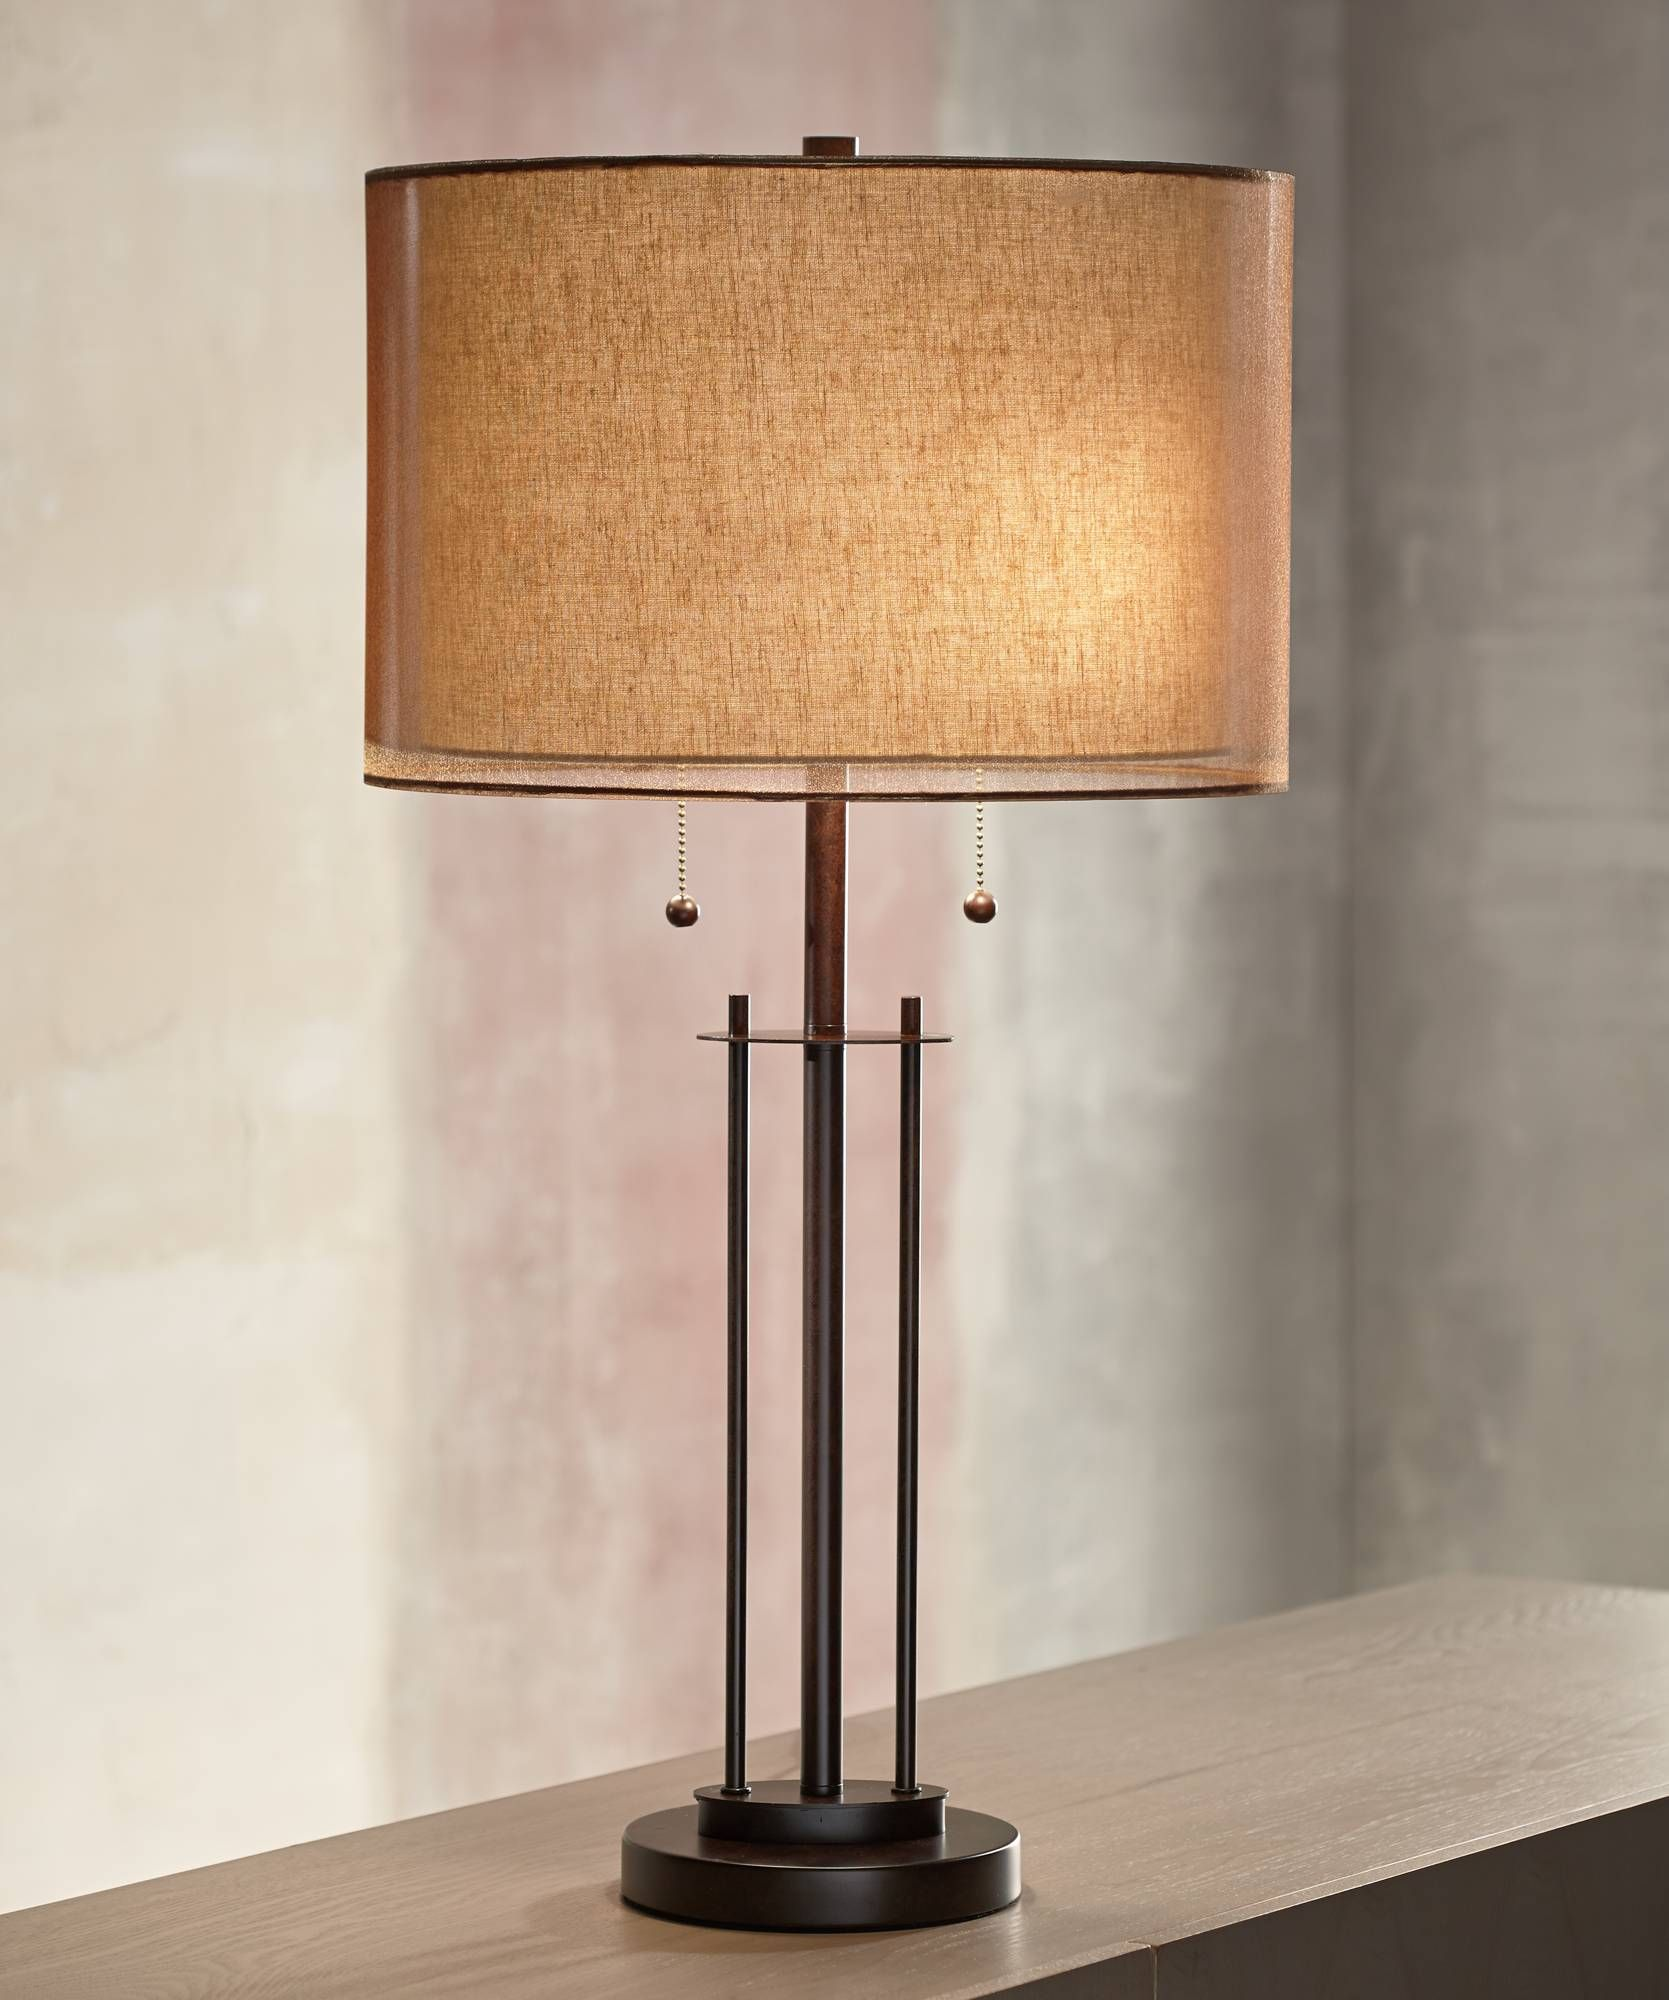 Howell Double Drum Shade Bronze Table Lamp 5y471 Lamps Plus In 2021 Bronze Table Bronze Table Lamp Table Lamp